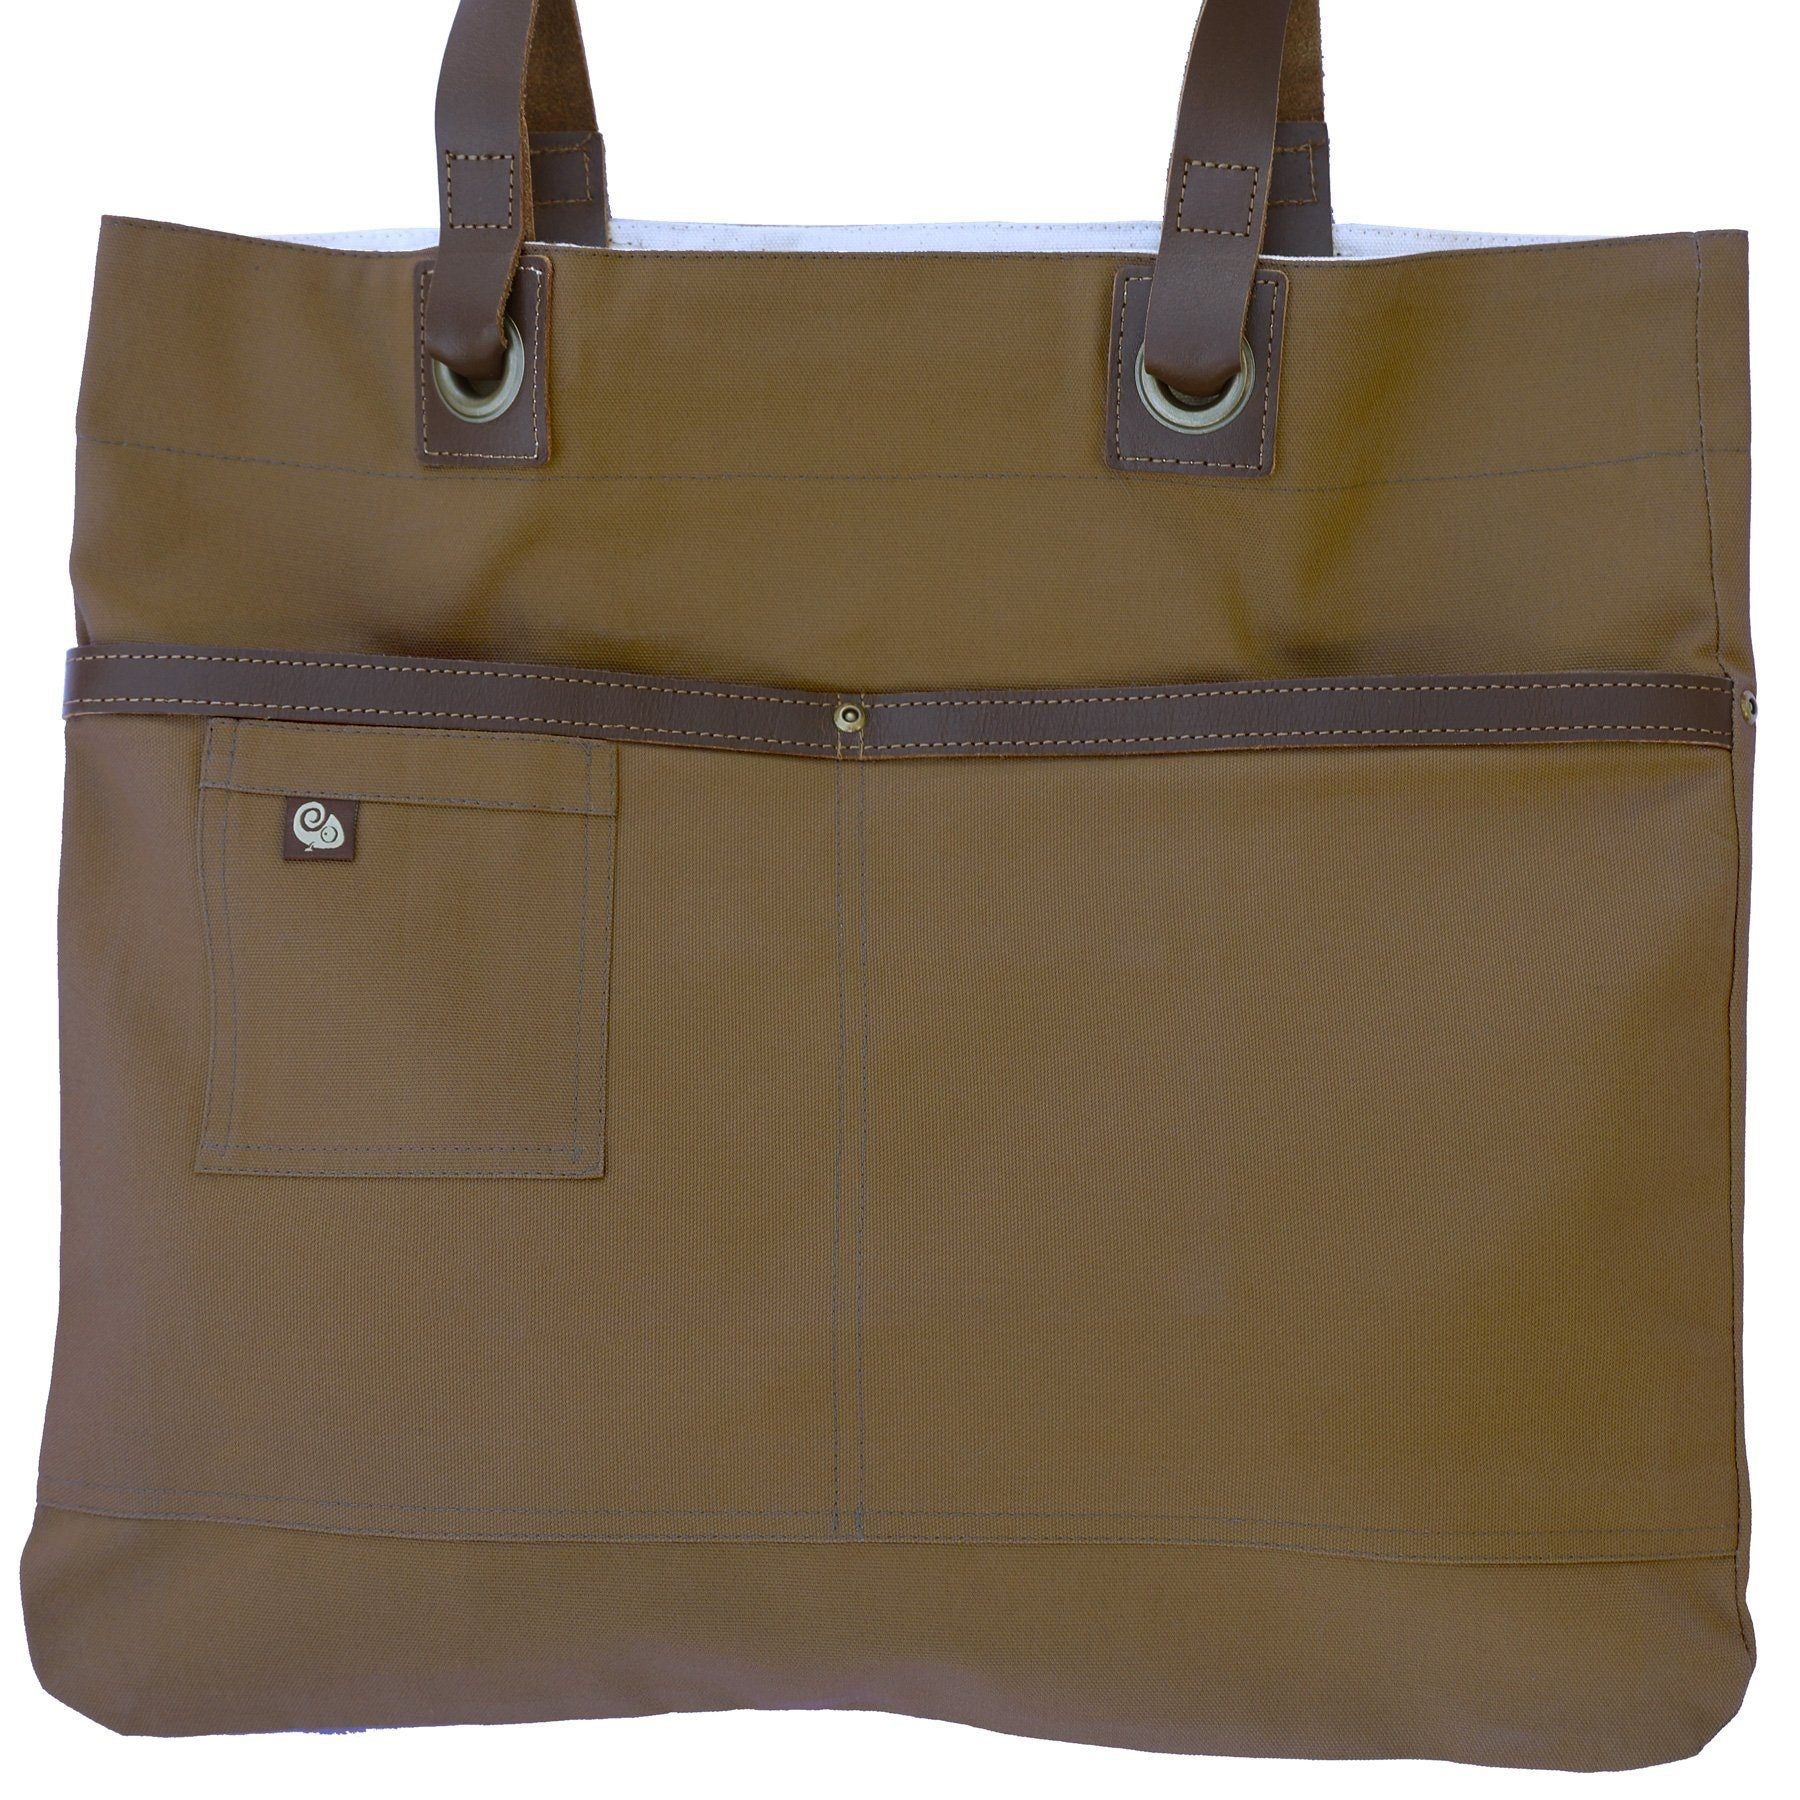 Koda Austell Canvas Bag (Caramel)